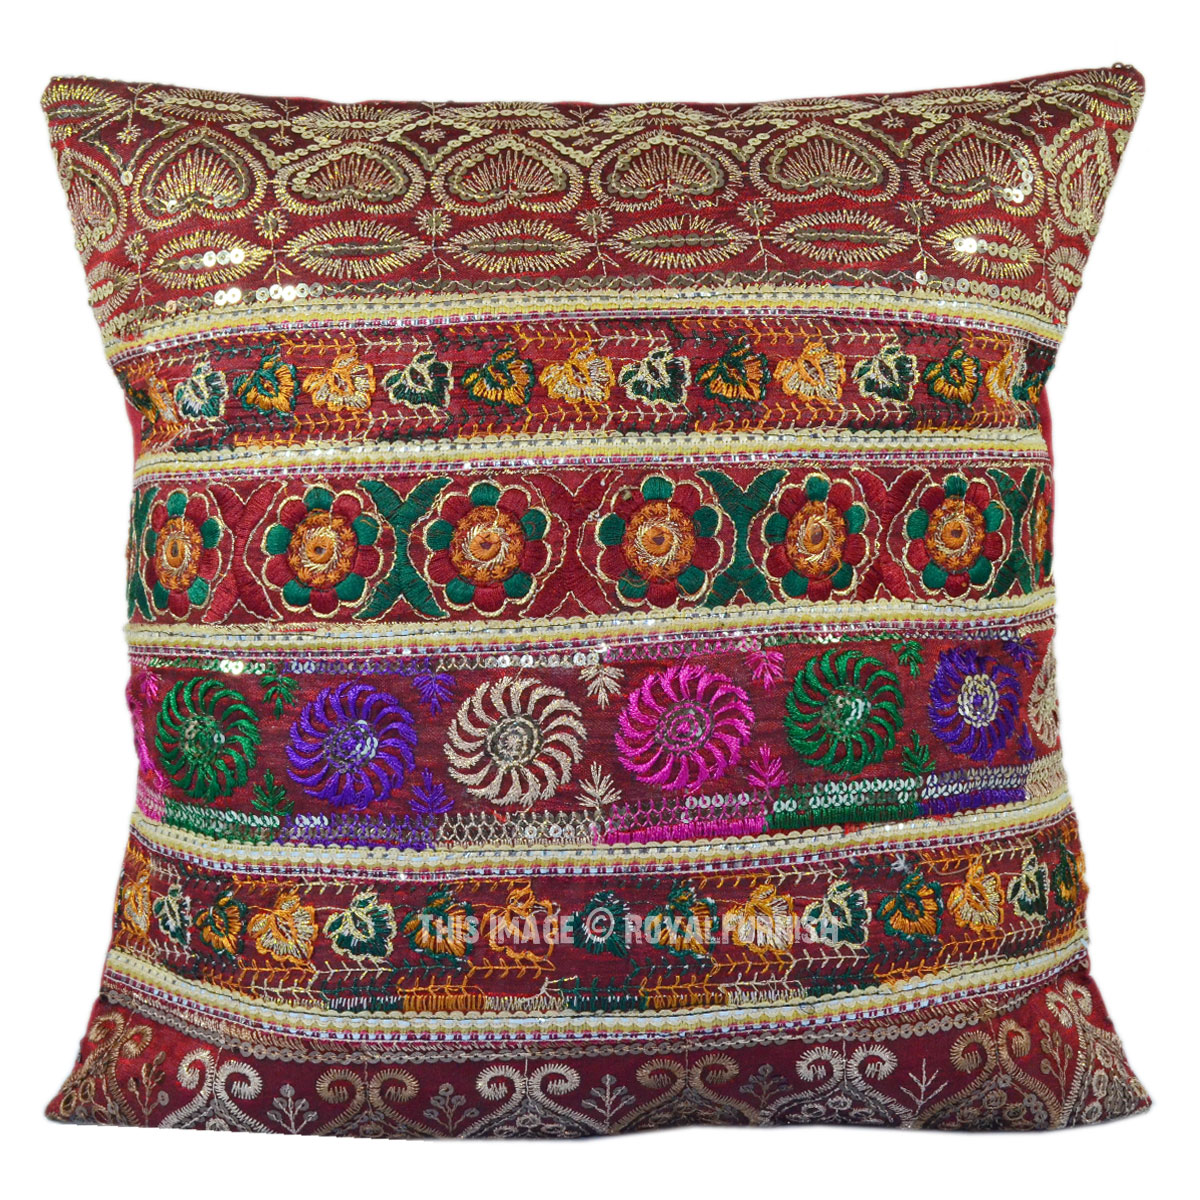 Antique Multicolor Silk Embroidered Sequin Indian Decorative Throw Pillow - RoyalFurnish.com